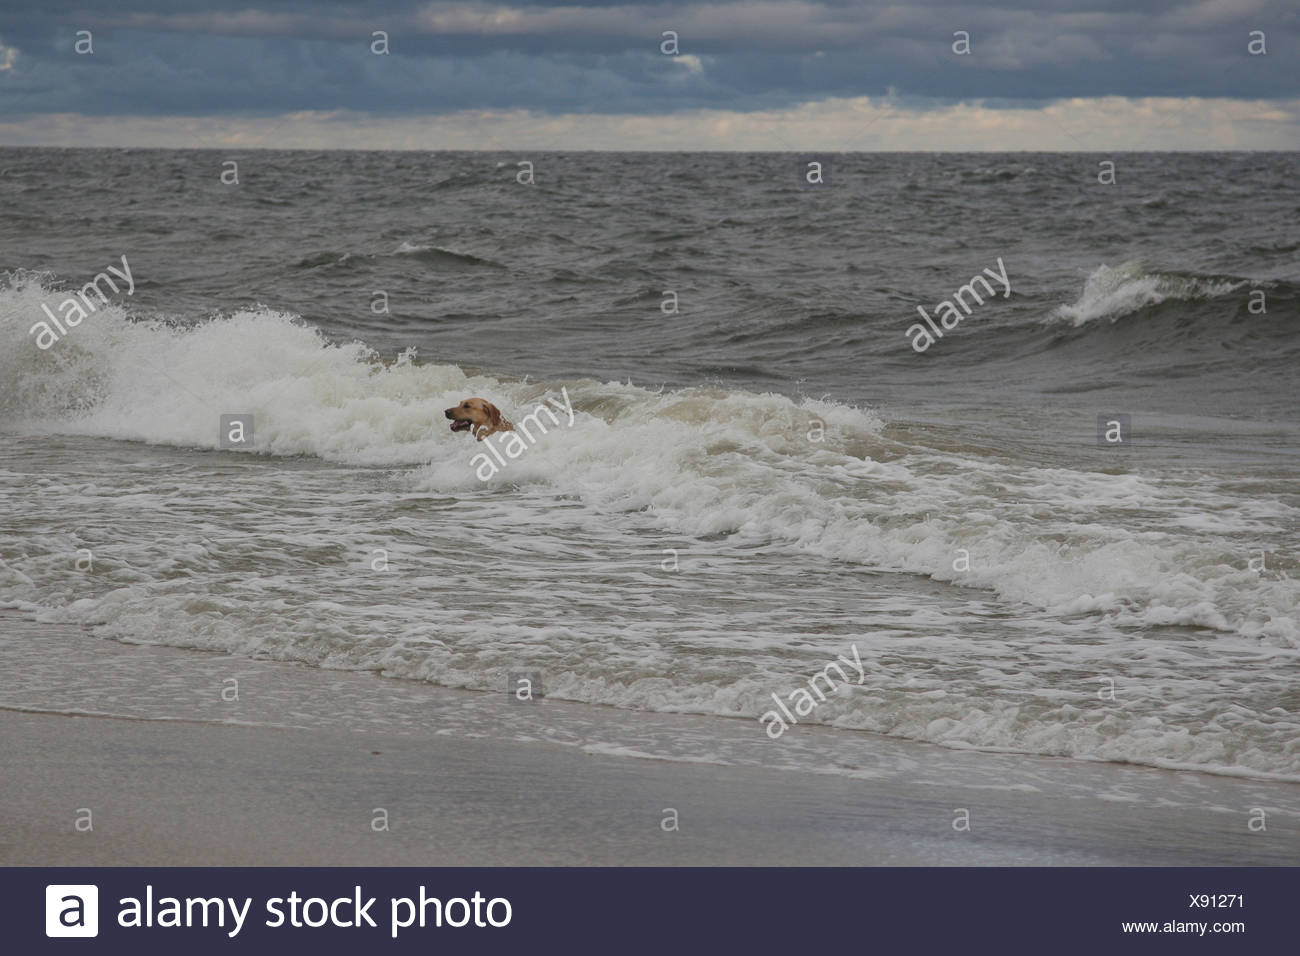 labrador retriever, canis lupus familiaris, zempin, usedom, ostsee, mecklenburg-vorpommern, germany - Stock Image